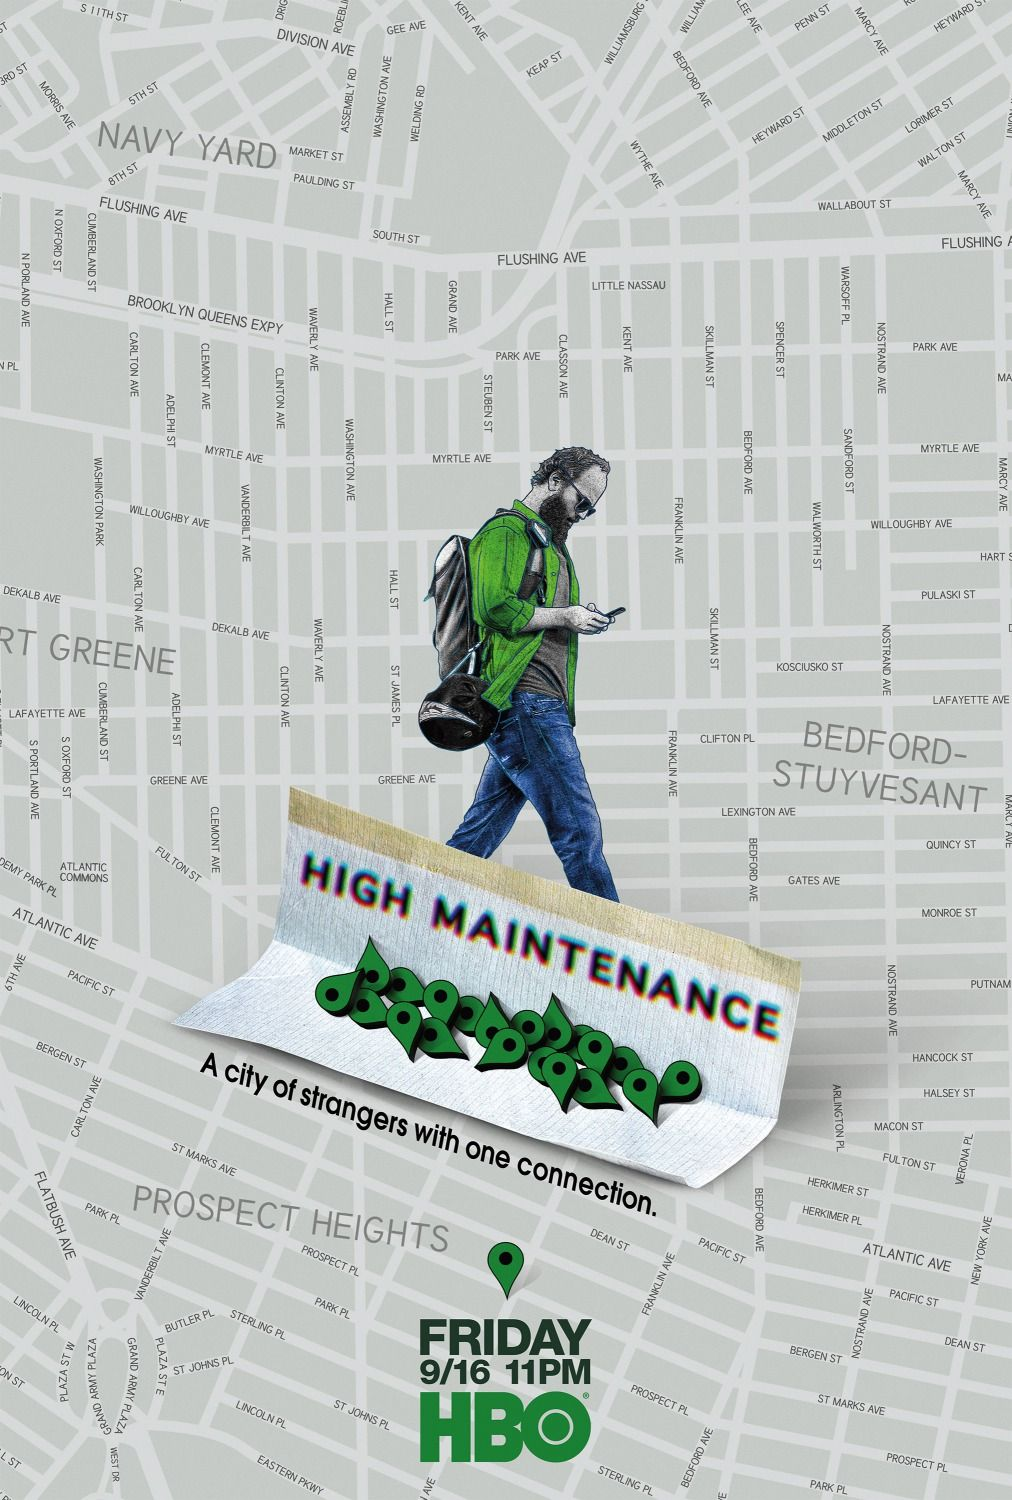 High Maintenance Trailer Images And Poster High Maintenance